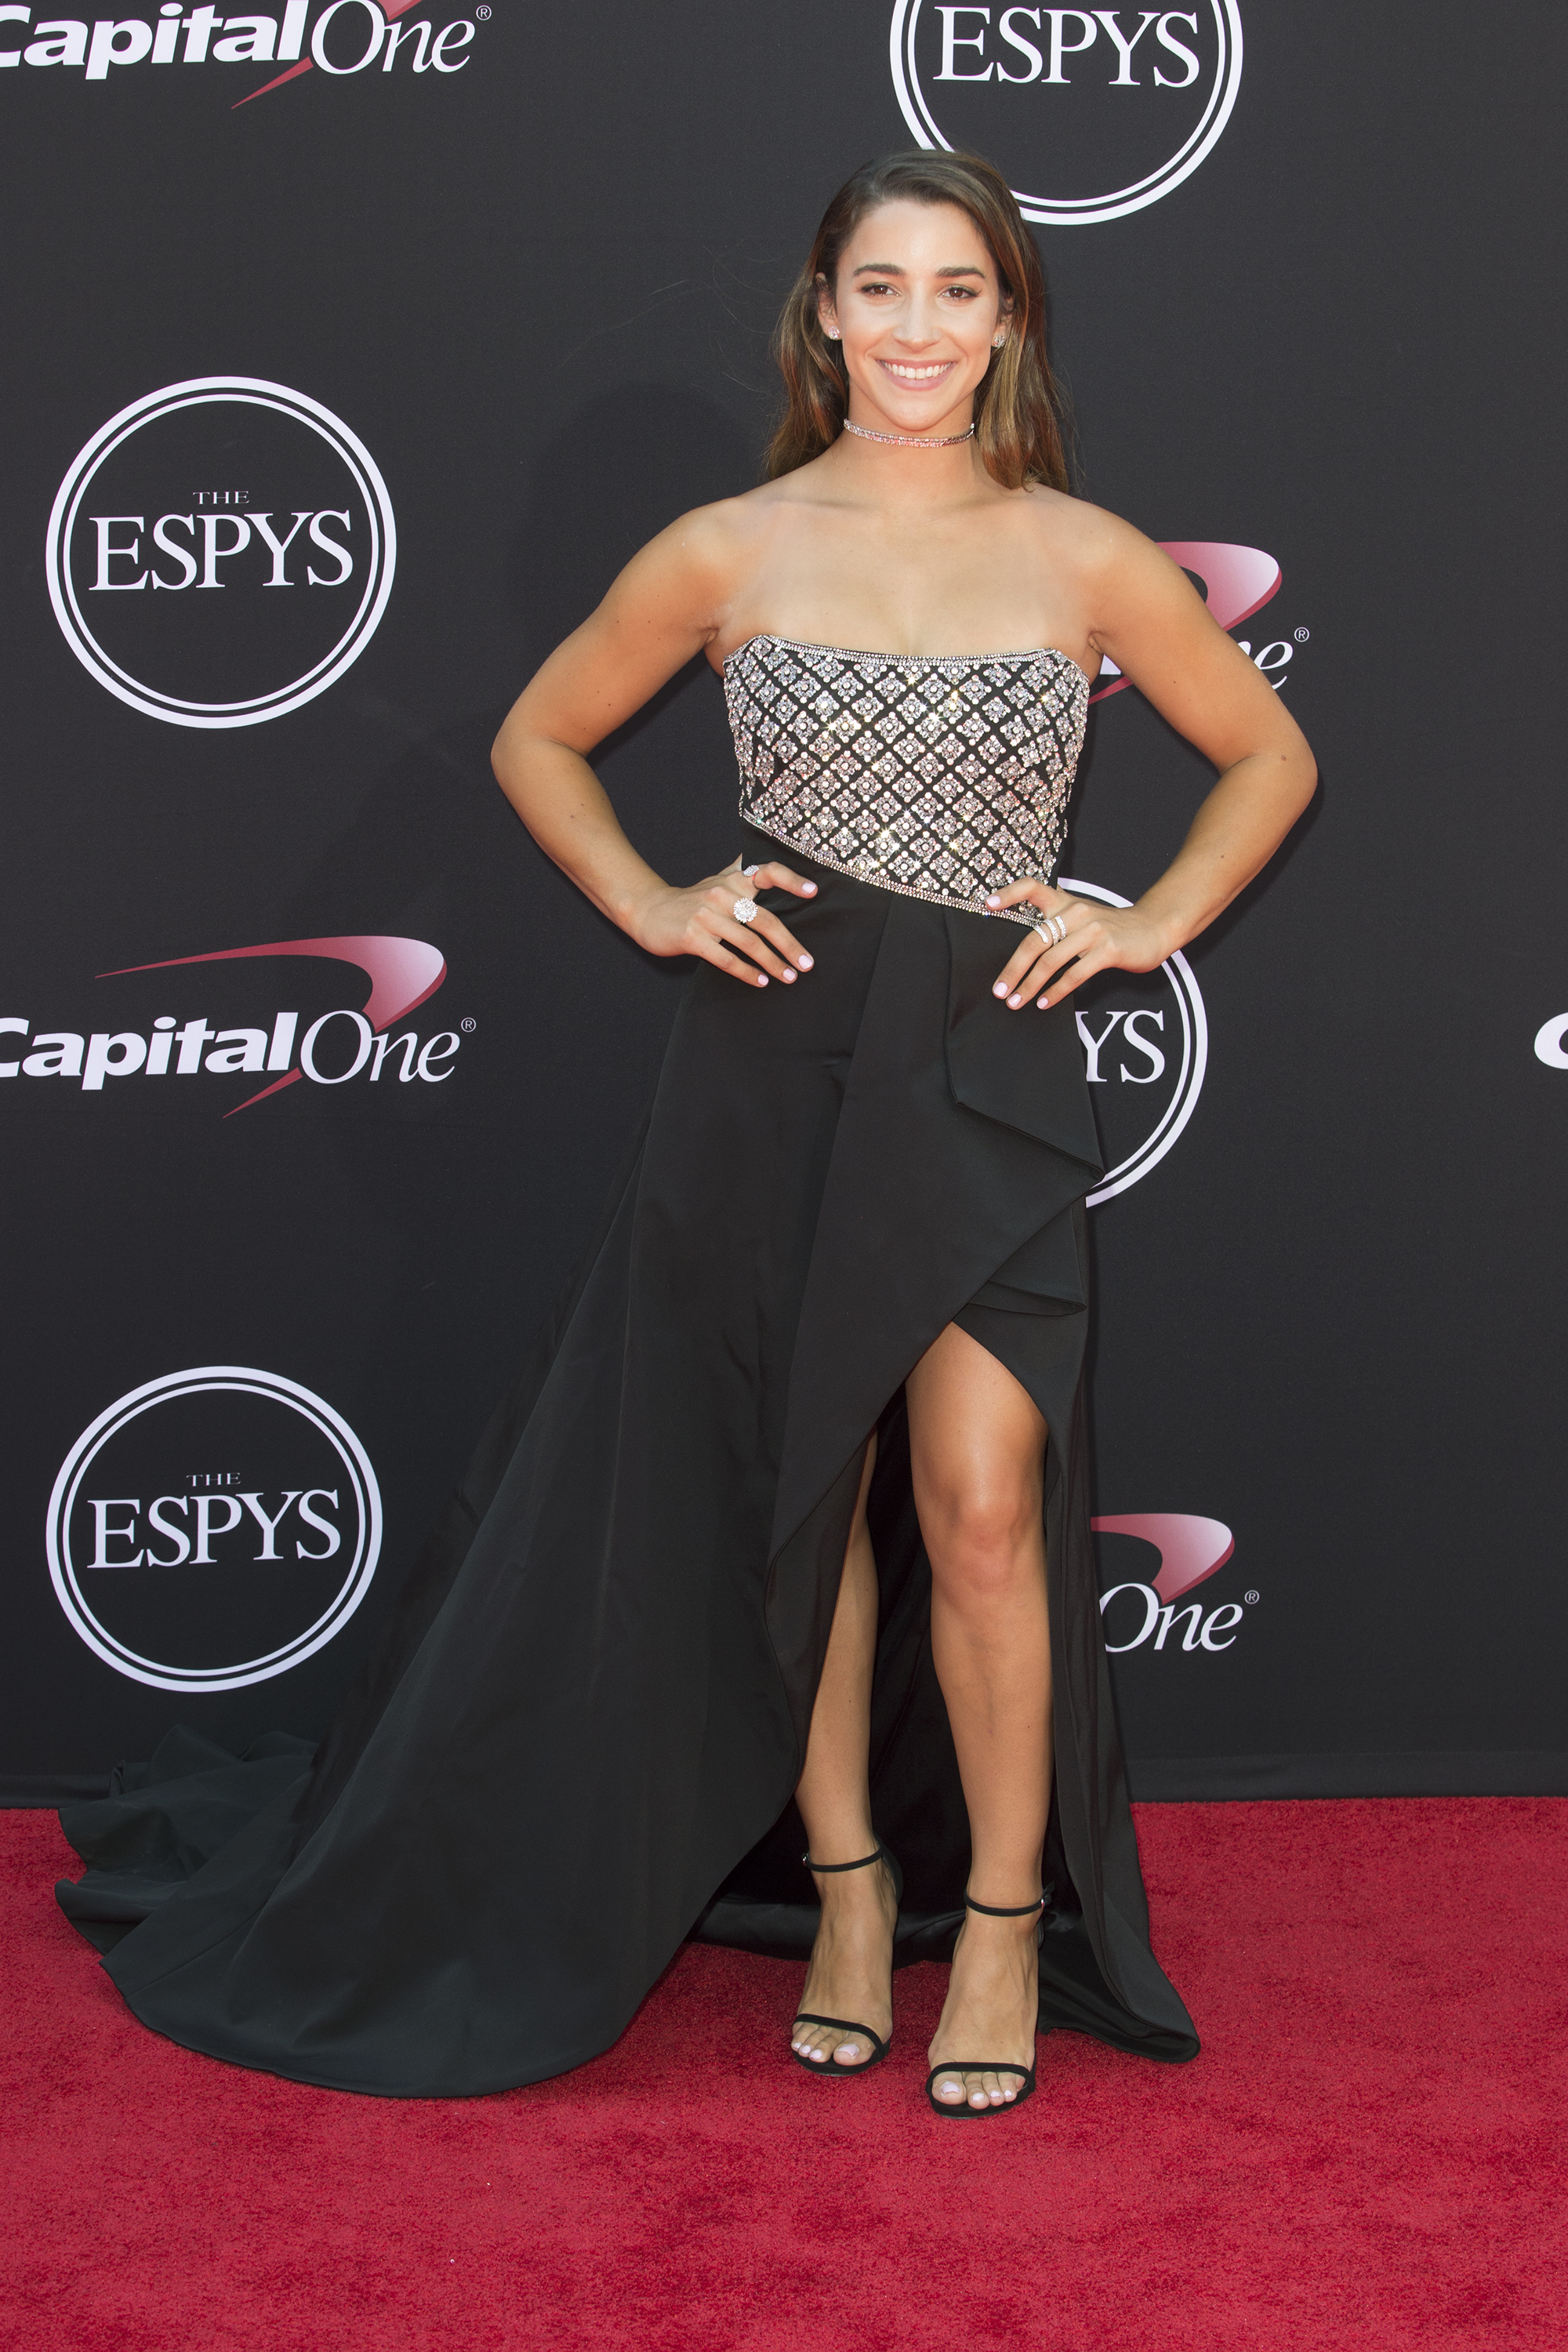 Aly Raisman (Courtesy photo: ABC/Image Group LA)